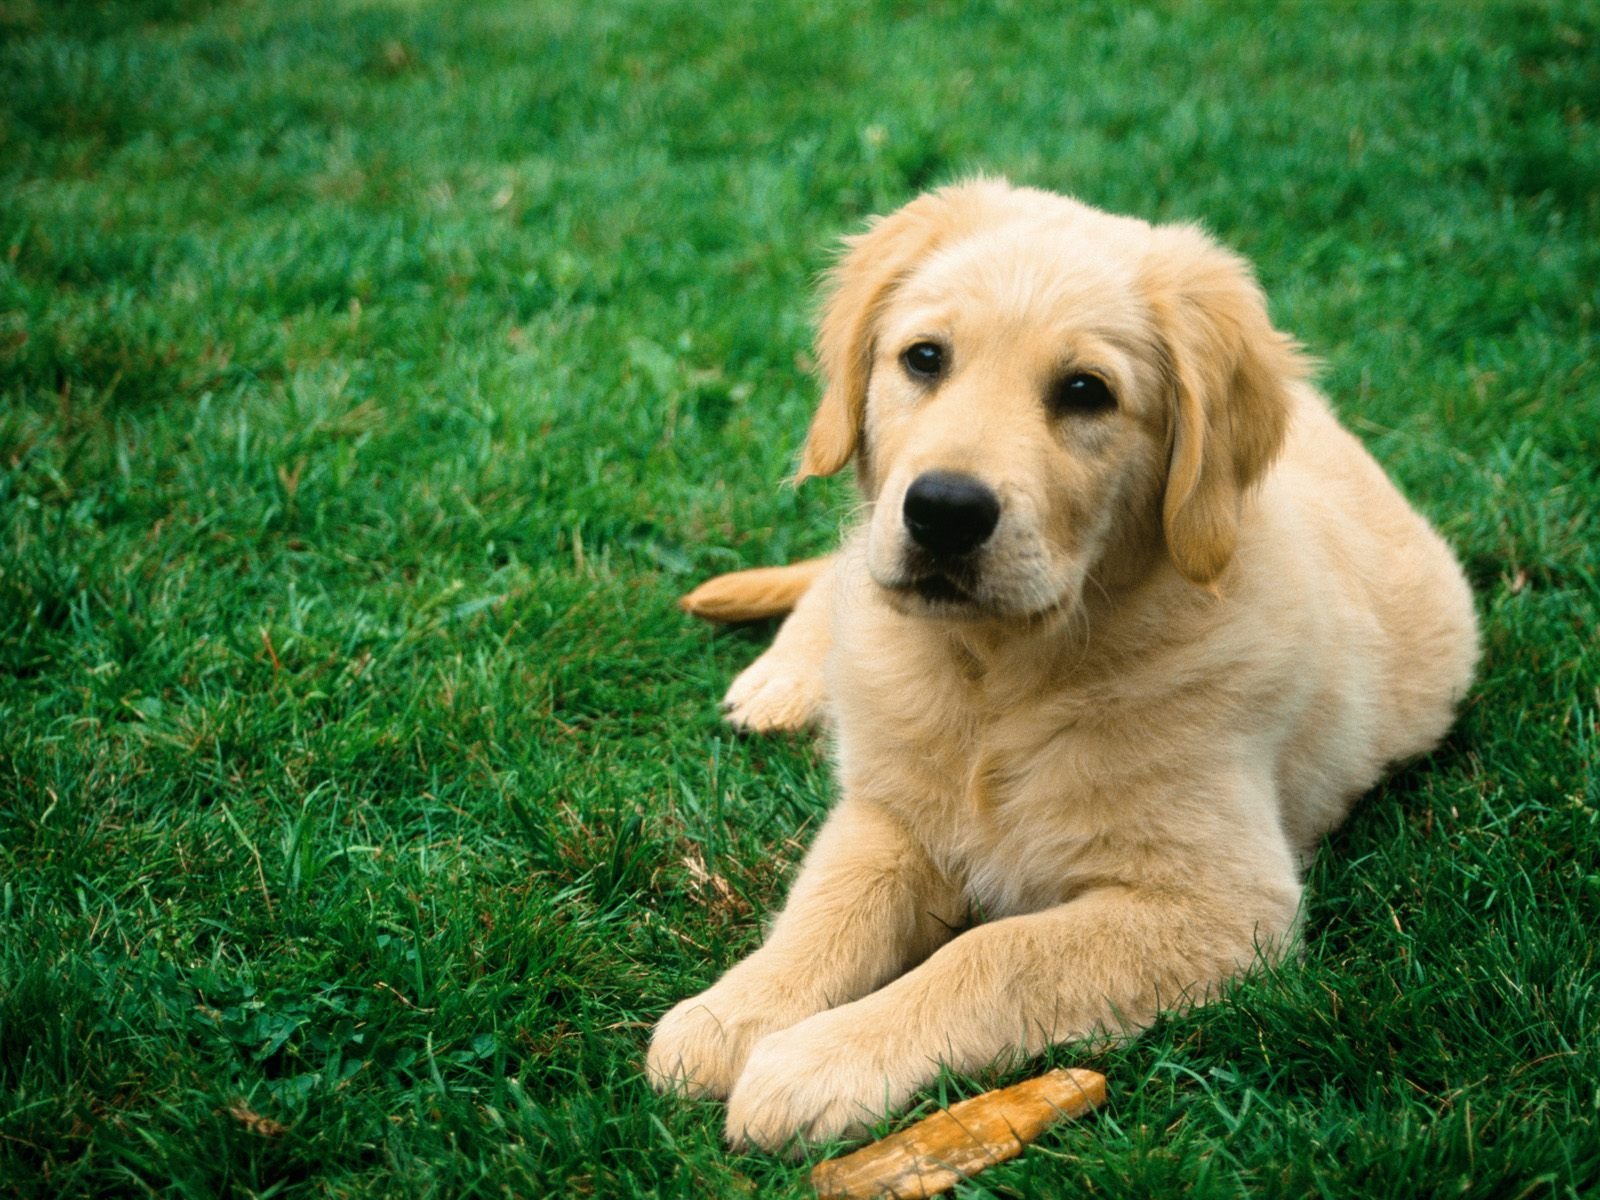 Dog on Green Grass Dog Wallpapers Backgrounds | Dogs Wallpapers ...